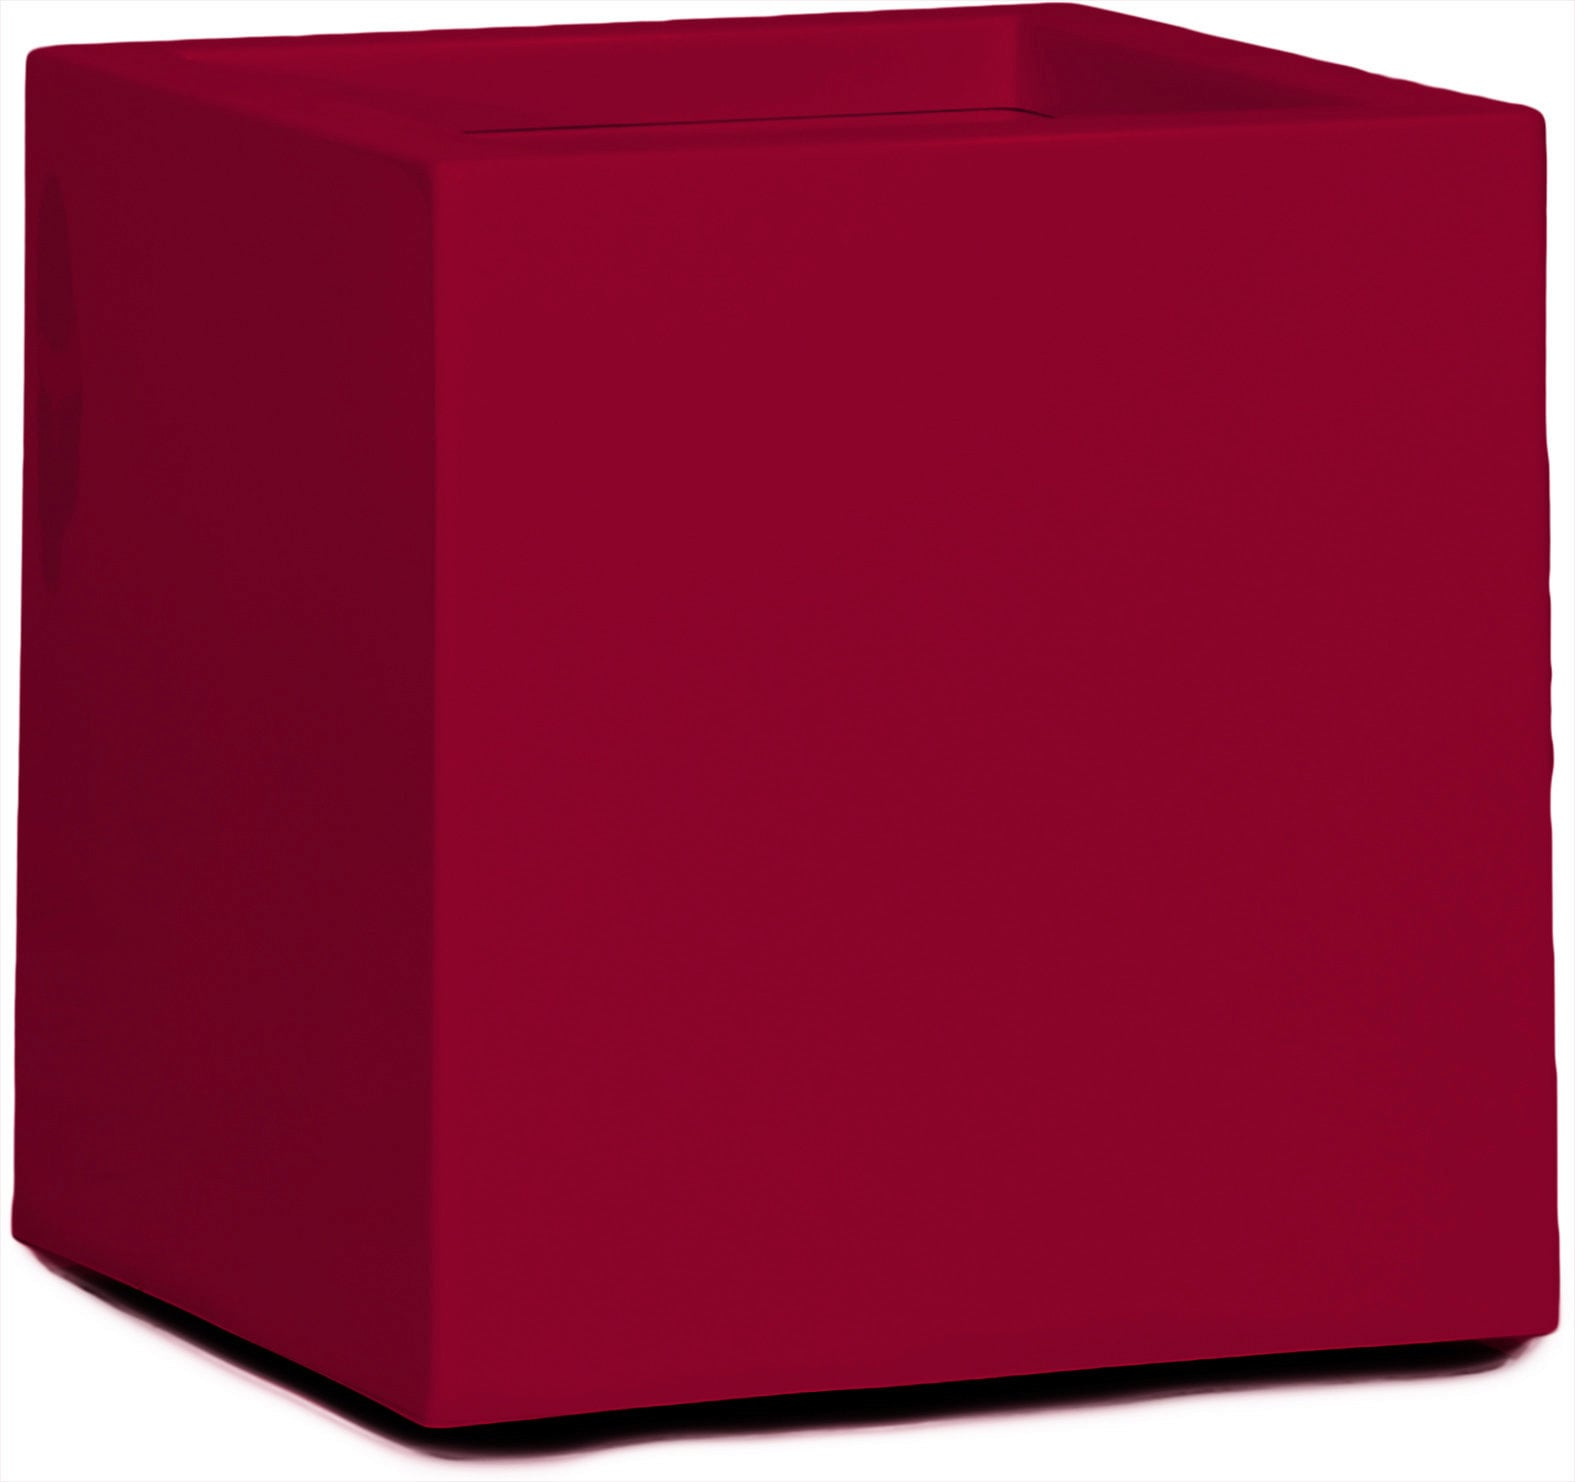 Cubus Online Shop Fleur Ami Premium Cubus Planter In Ruby Red